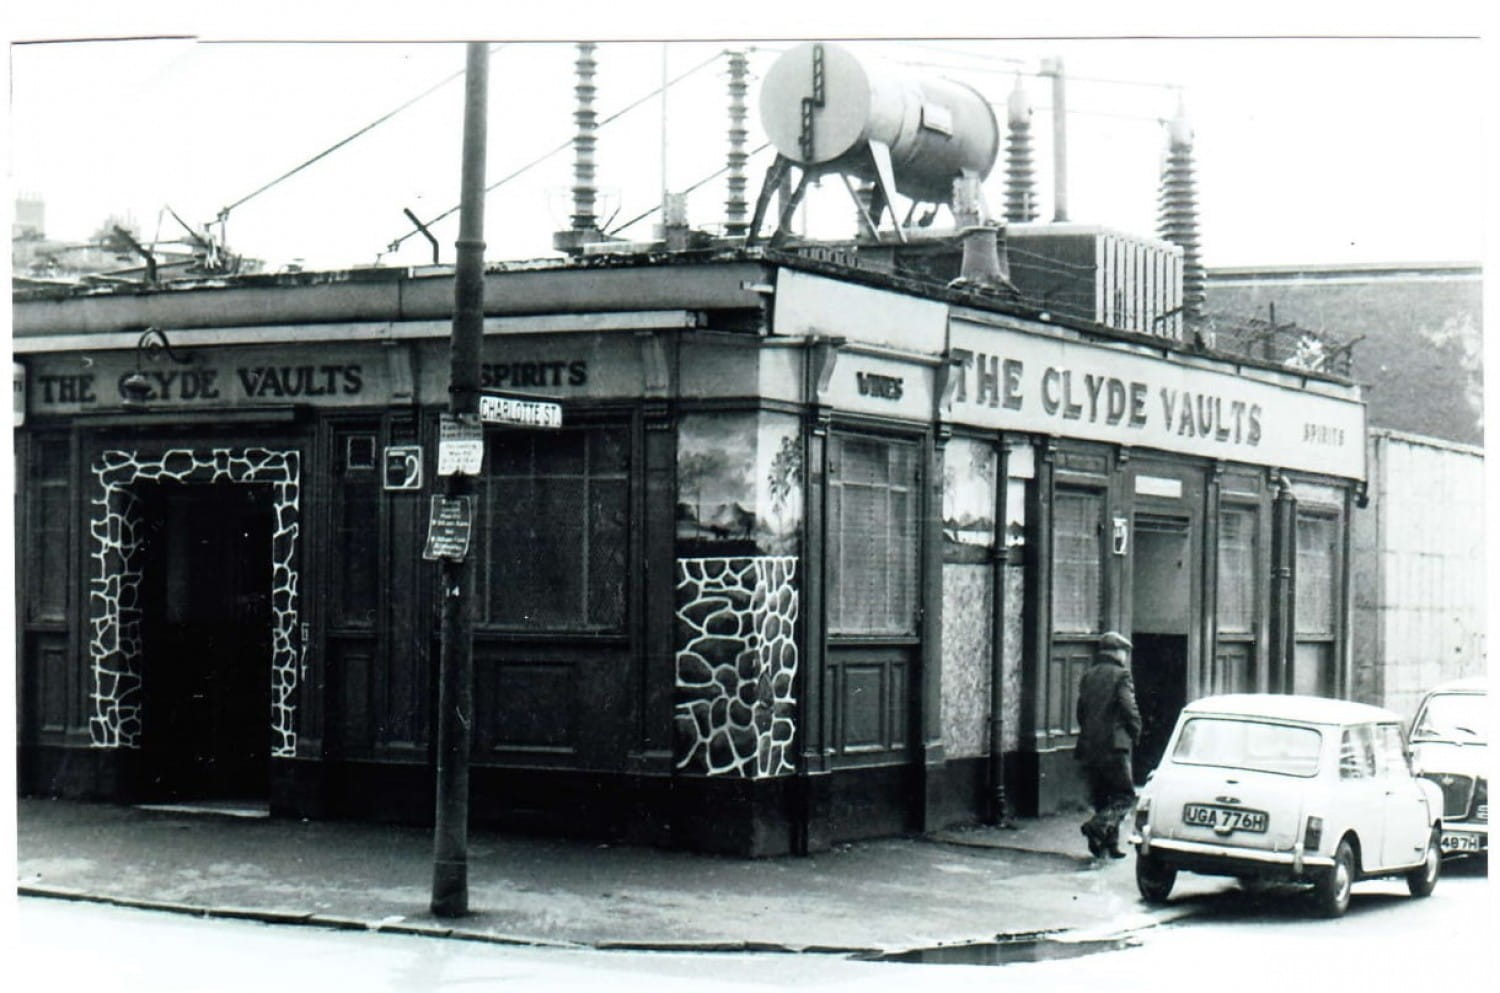 The Clyde Vaults, Gallowgate.